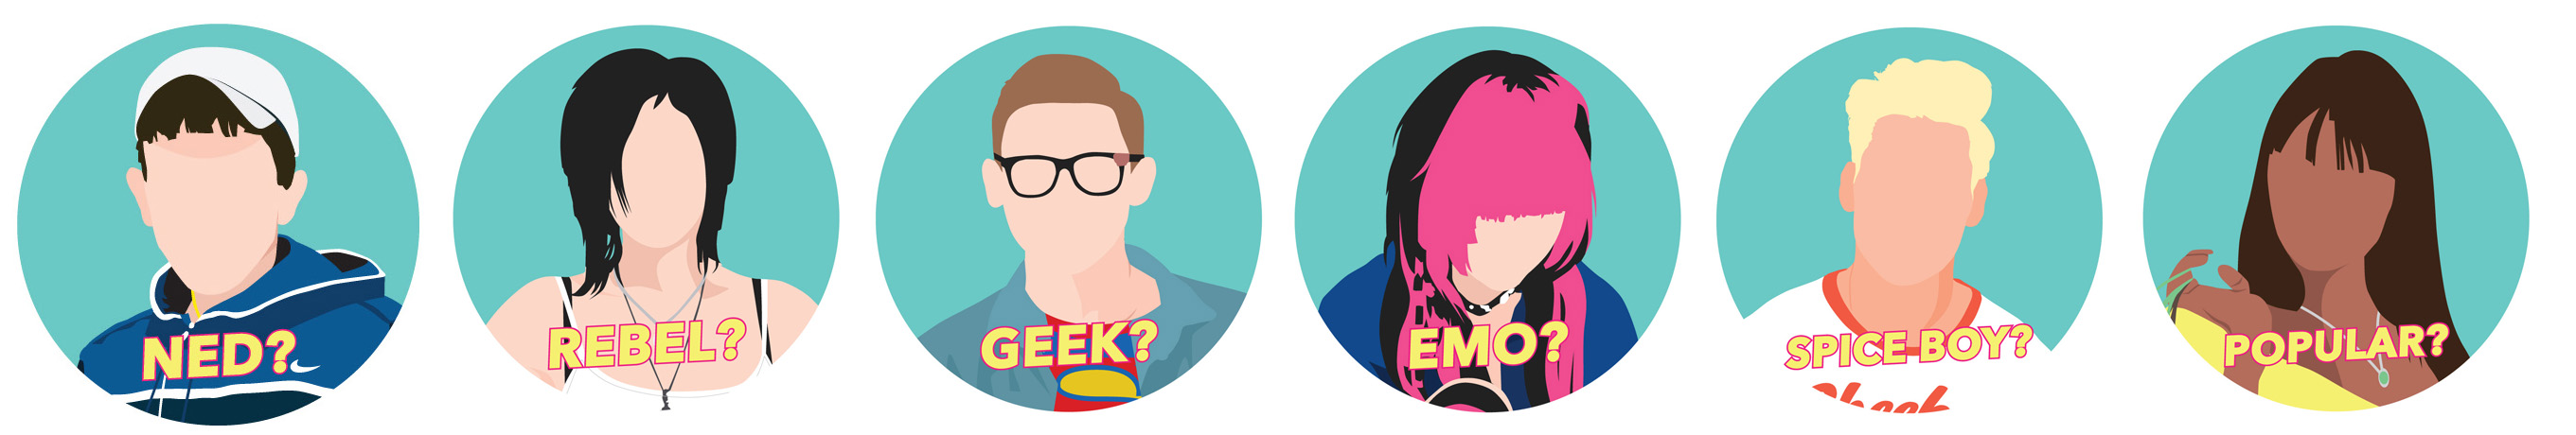 Cartoon pictures of 6 stereotypes: Ned, Vegan Activist, Spice Boy, Popular Girl, Geek and Emo.